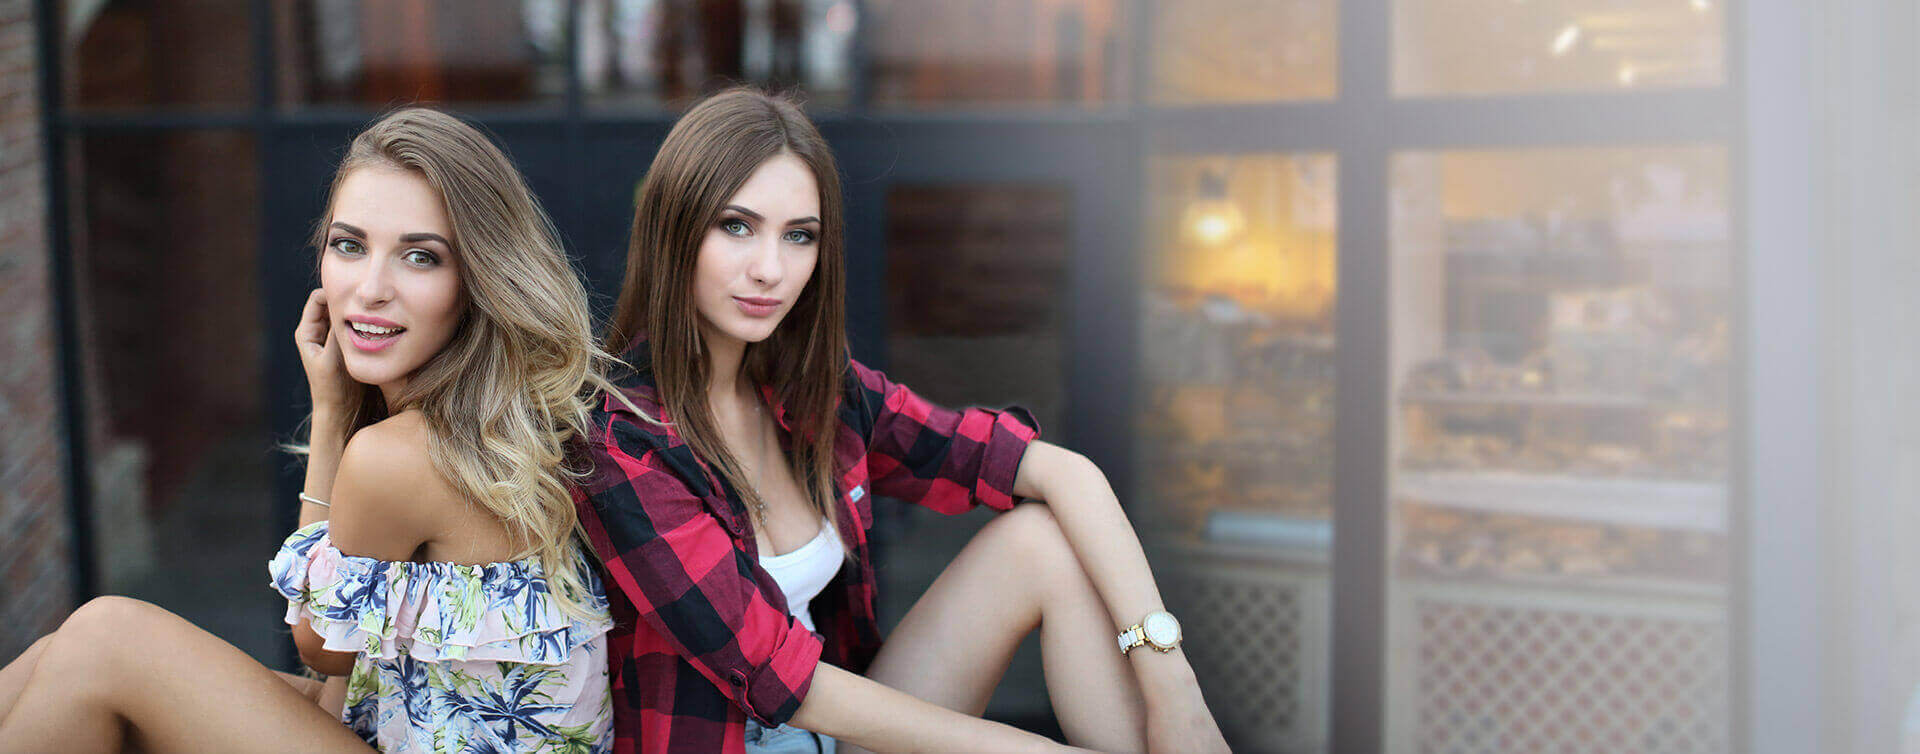 Russian model dating updating from leopard to mountain lion